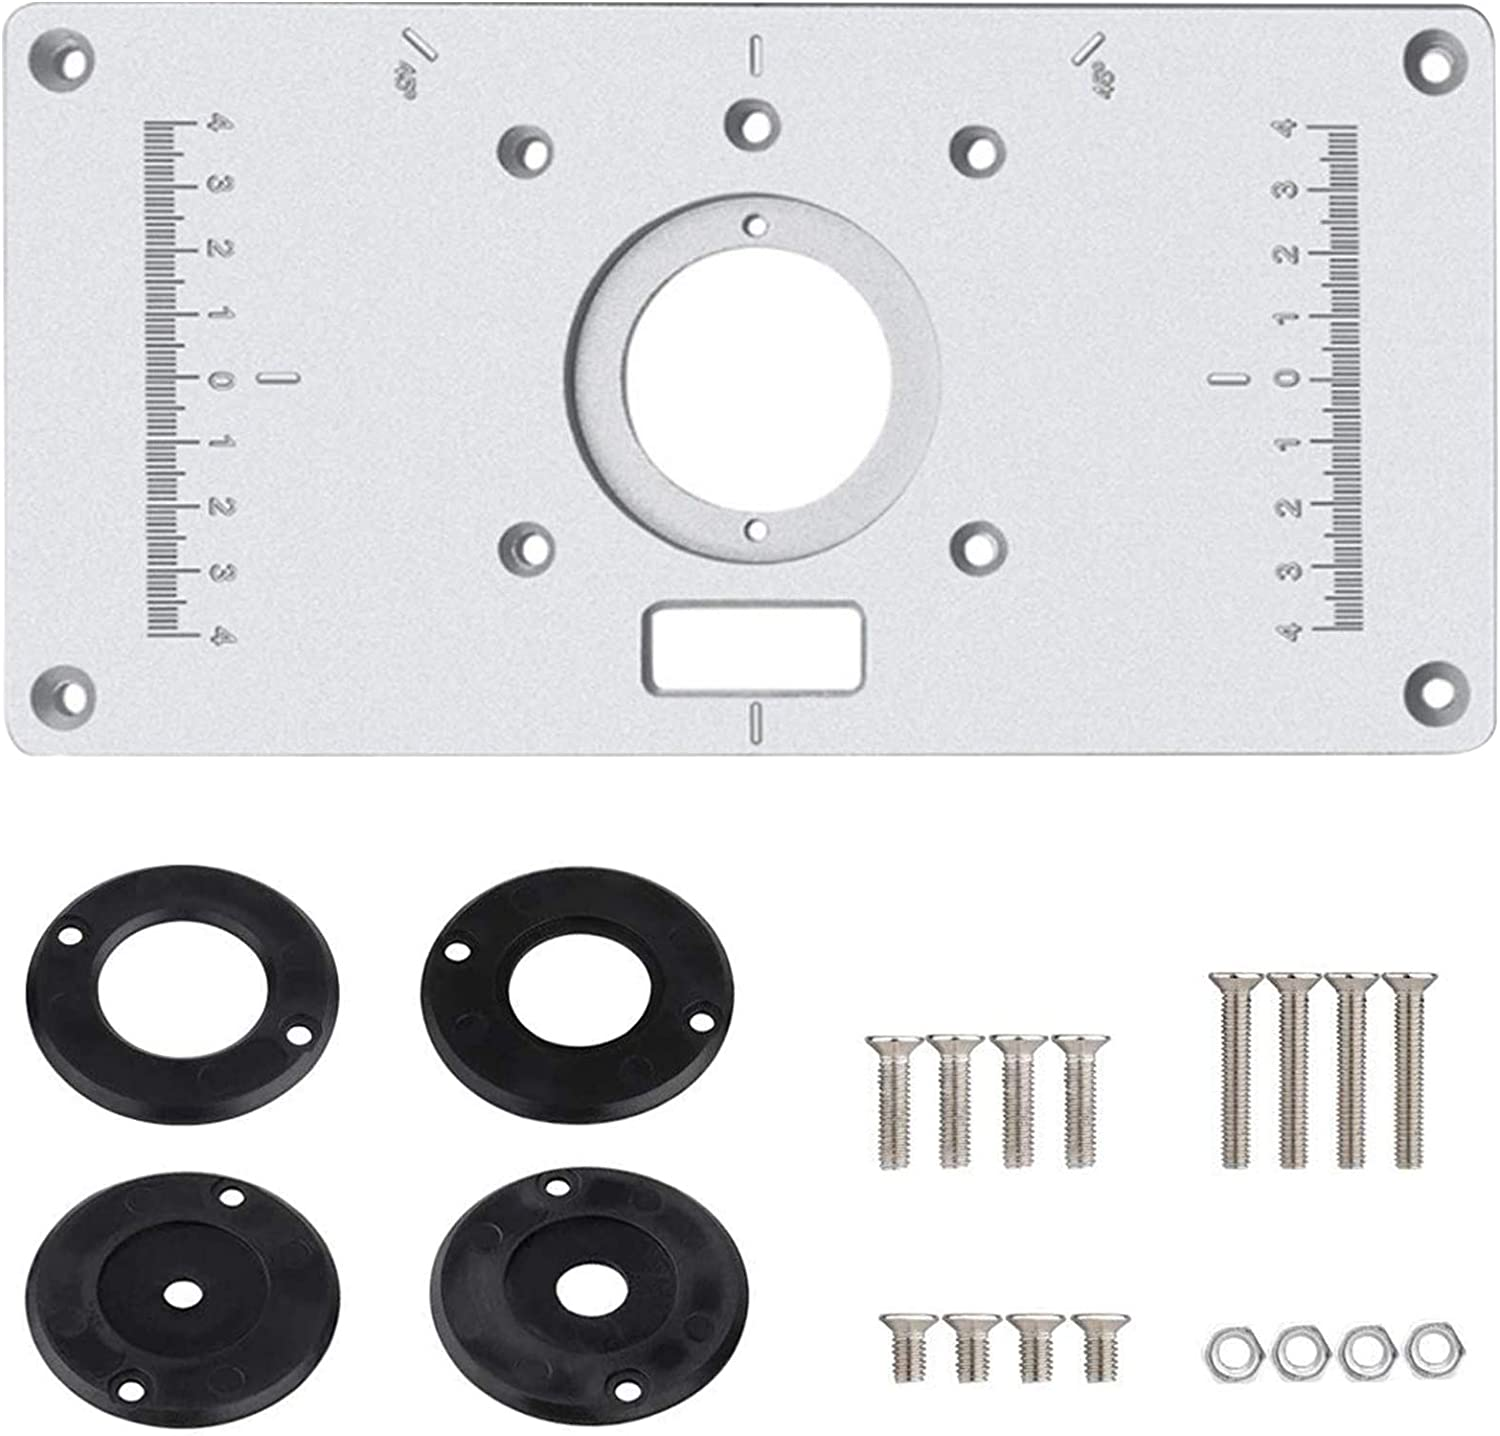 Aluminum Router Table Insert Plate for Popular Trimmers Router DIY Woodworking with 4 Rings and Screws for Woodworking Benches Router Table Plate Mounting Base Plate 9.3x4.7inch - -